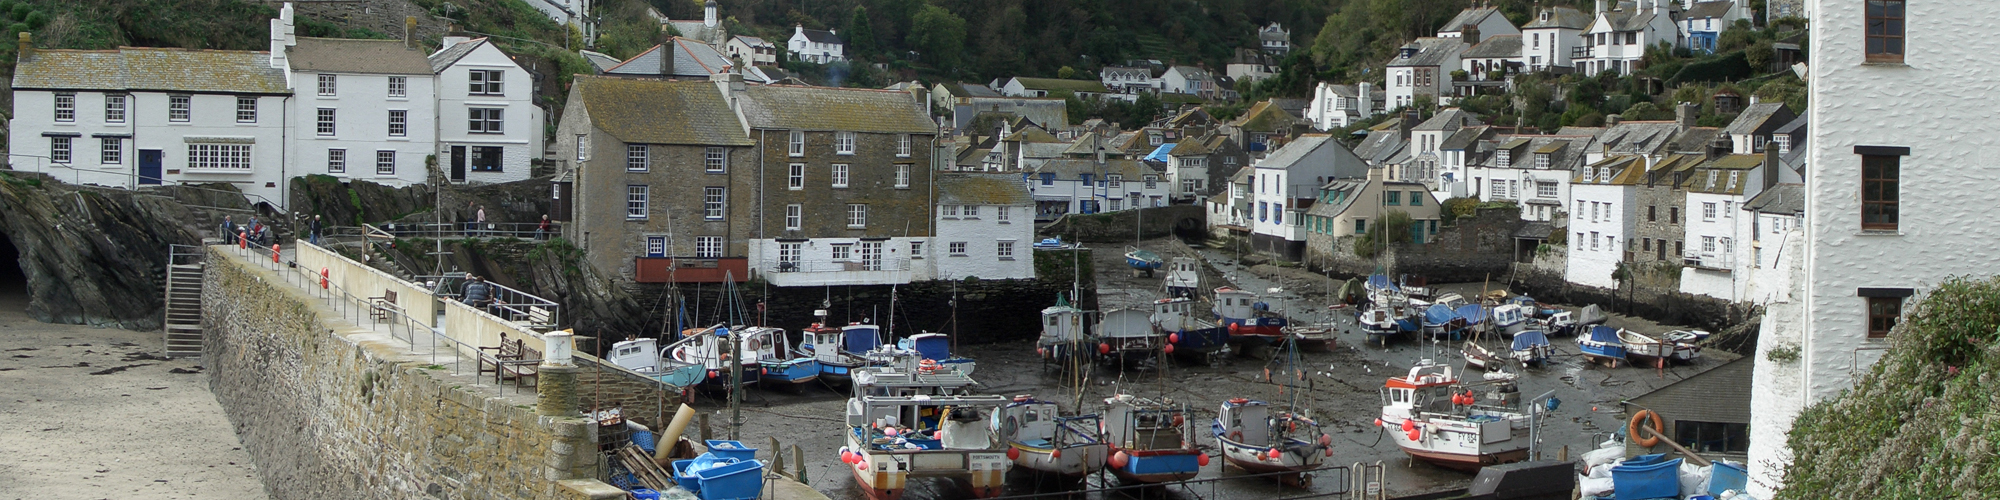 Talland House and Laity, Polperro, Cornwall